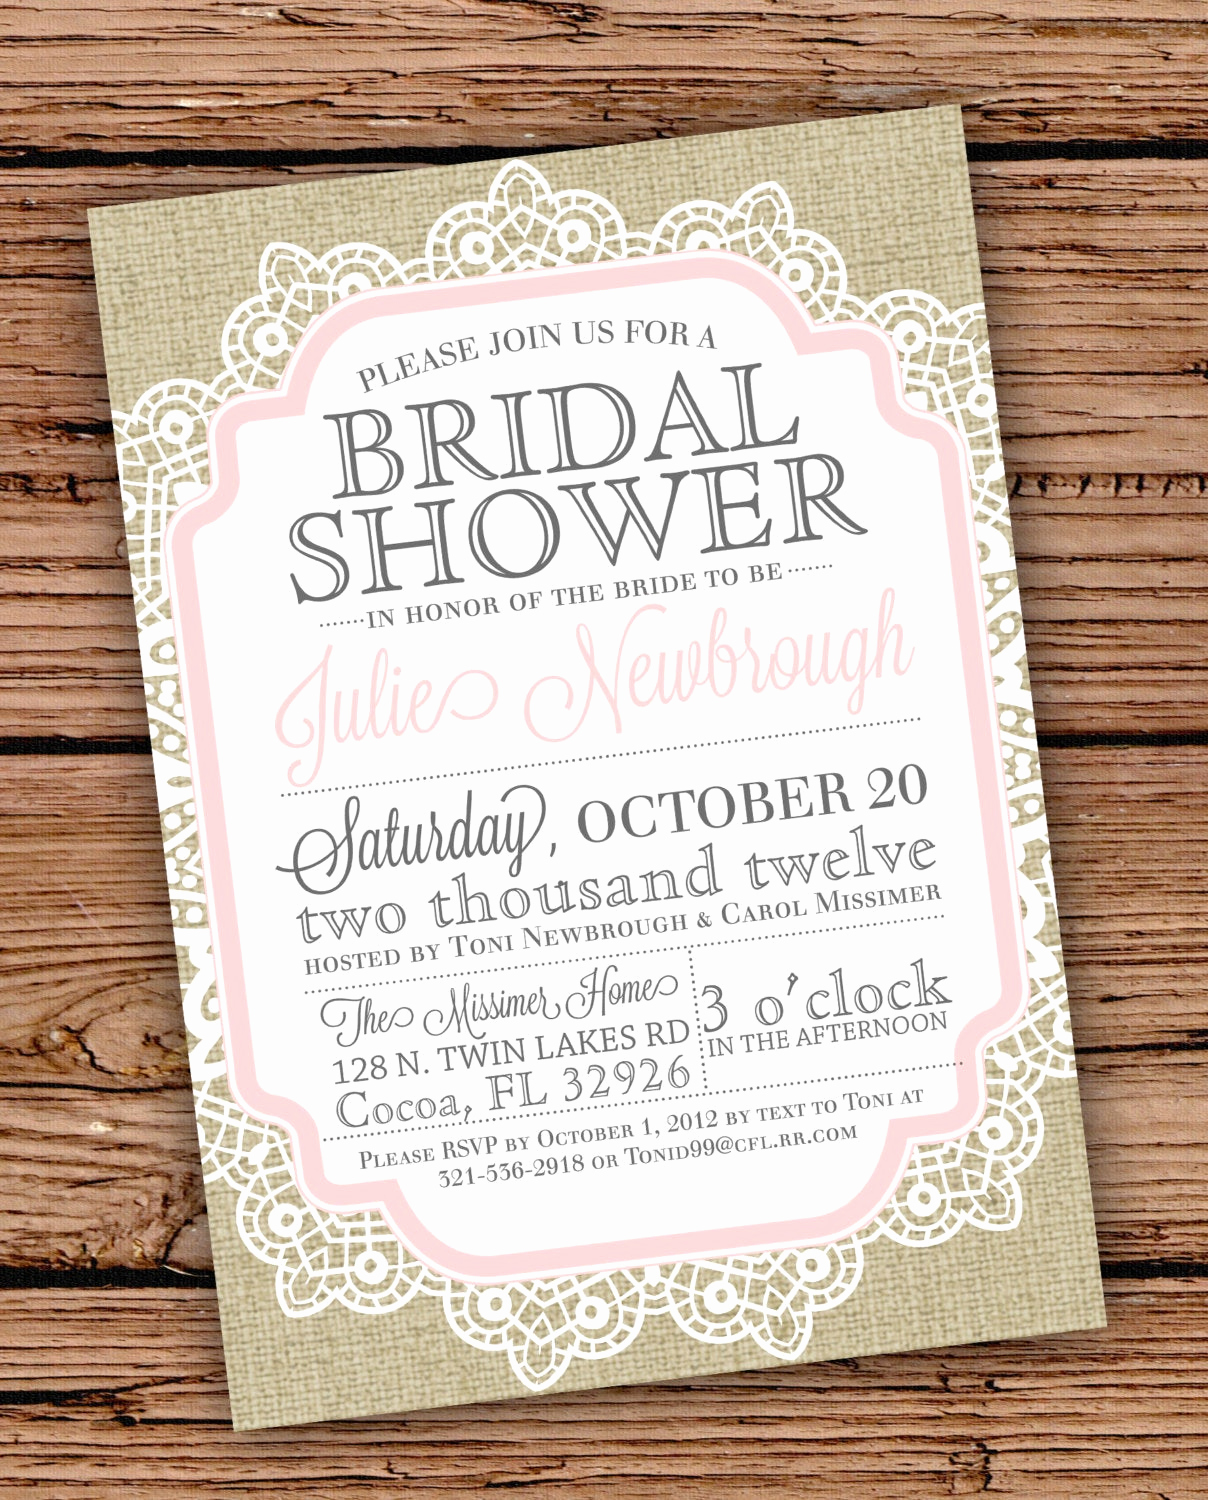 Bridal Shower Invitation Templates Inspirational Burlap and Lace Vintage Bridal Shower Baby by